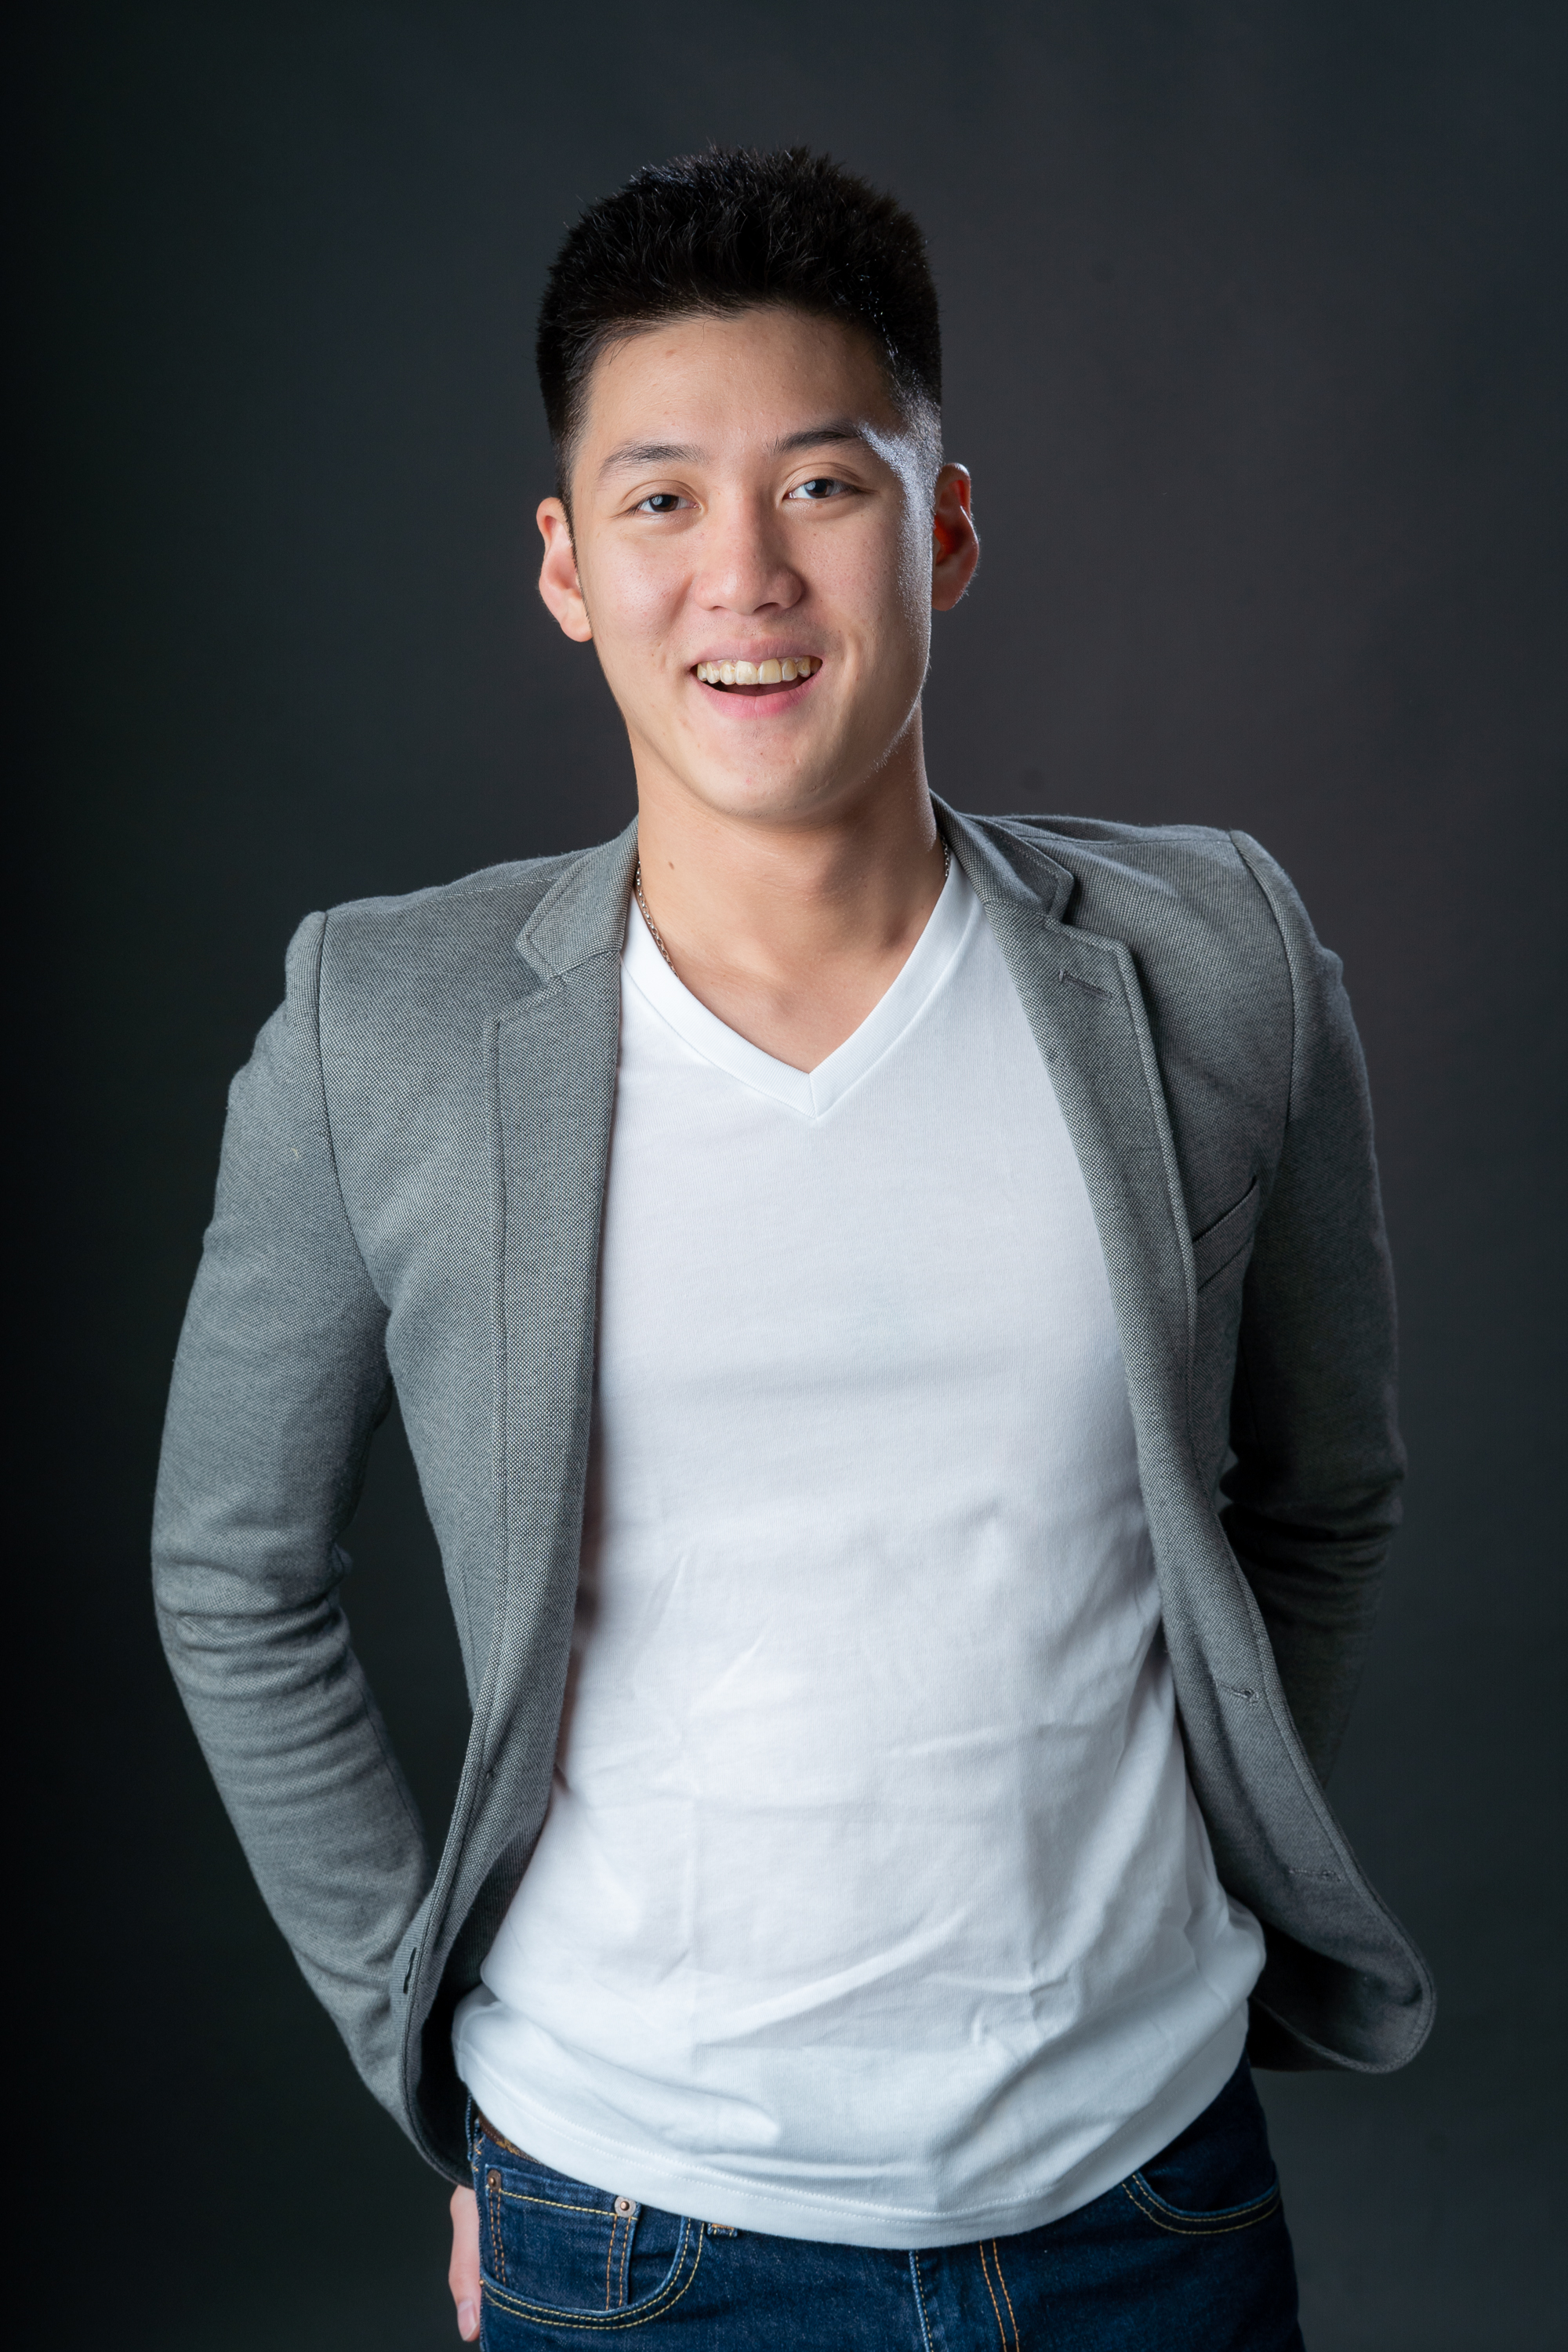 23-year-old entrepreneur Alaric Ong harnessed the power of digital marketing and advertising techniques to reach the top